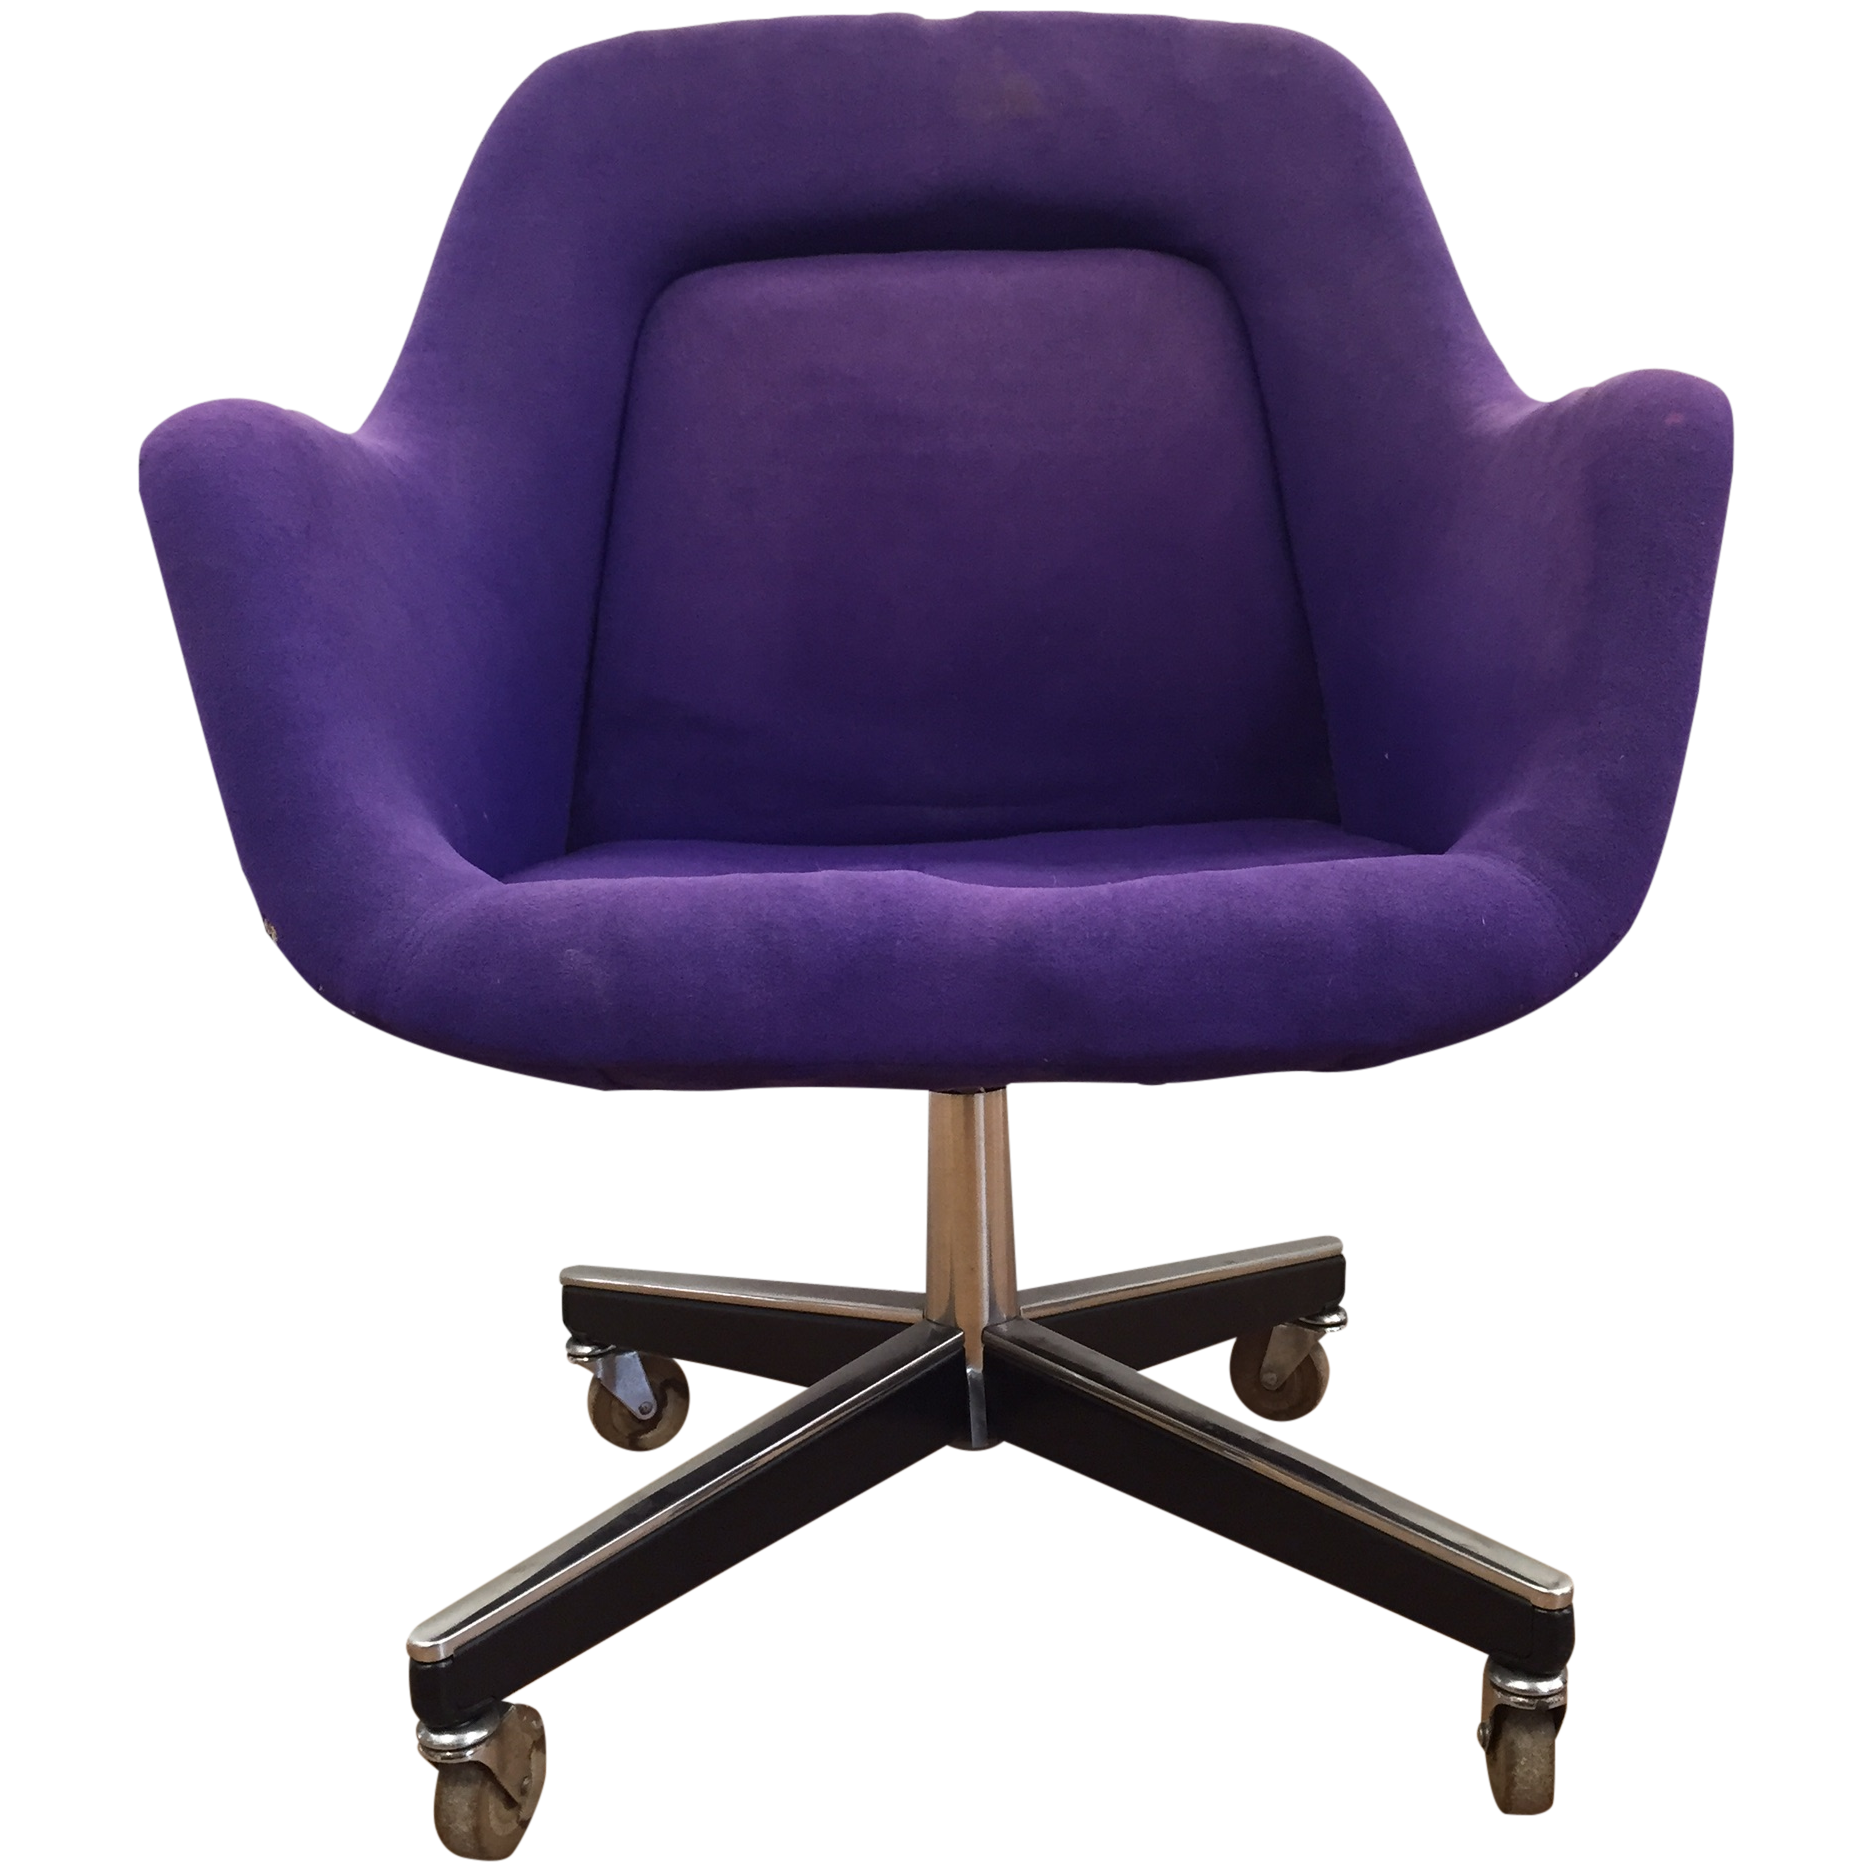 chair tulip co knoll uk nest studio chairs at product buy the